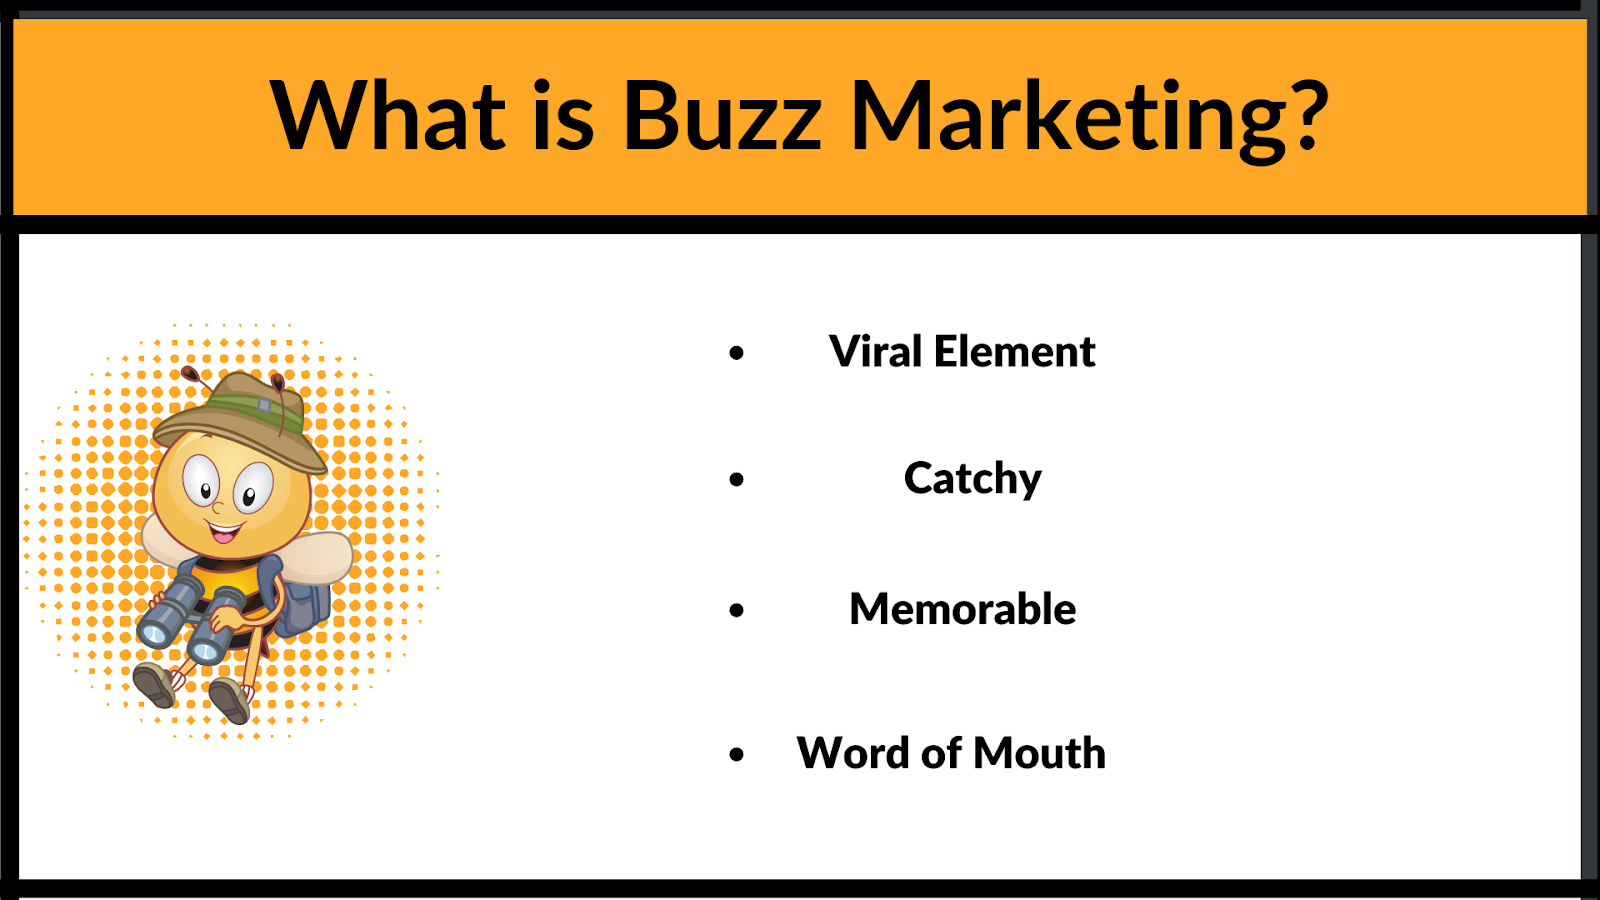 What is Buzz Marketing and what does it consists of?